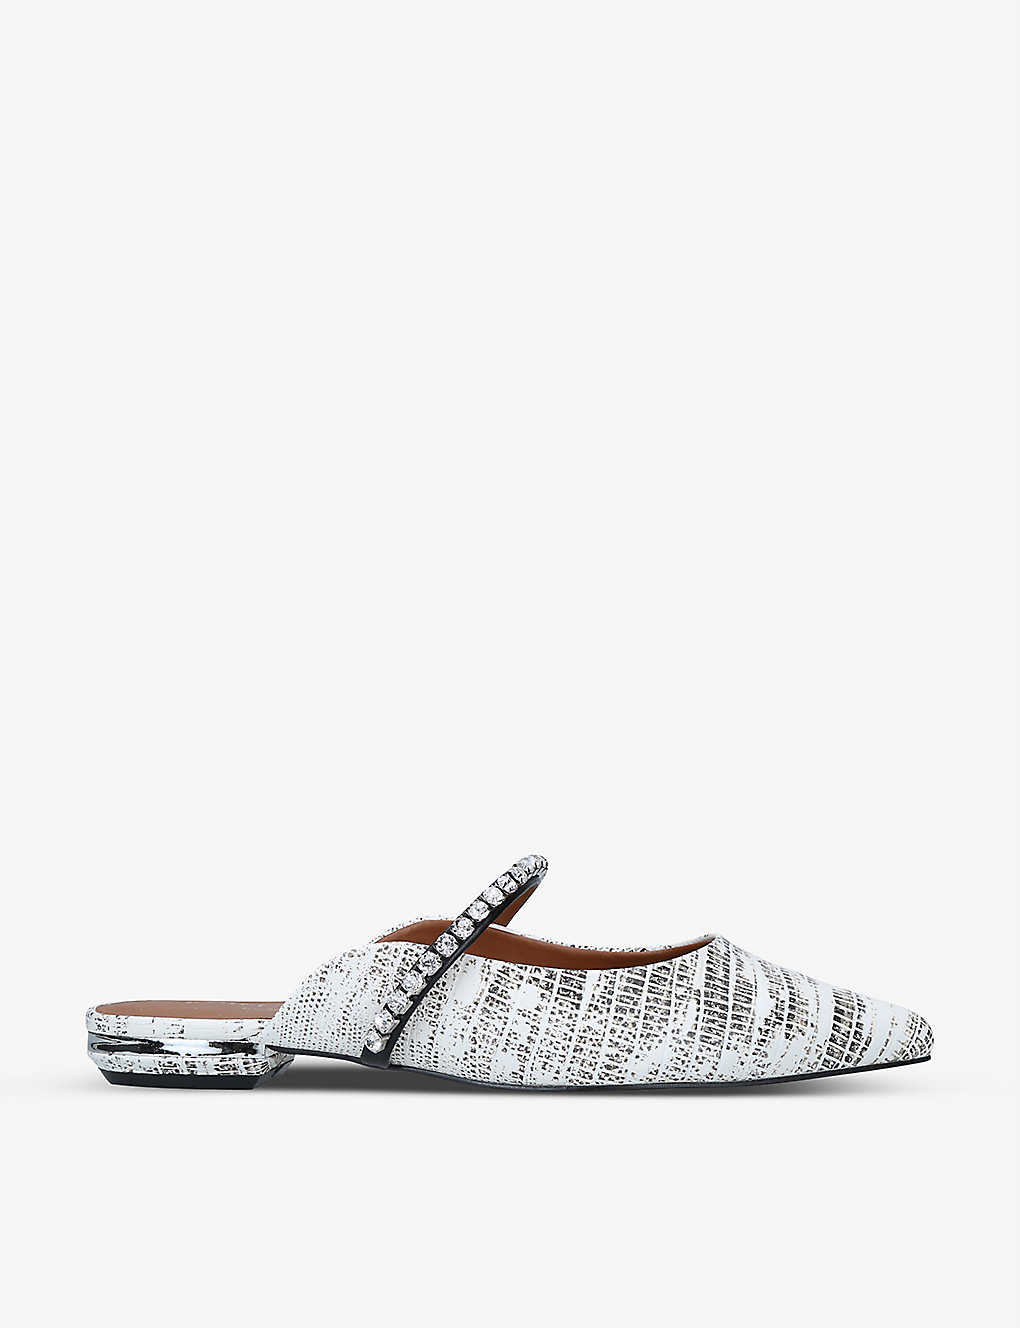 KURT GEIGER LONDON: Princely 2 snake-print faux leather mules